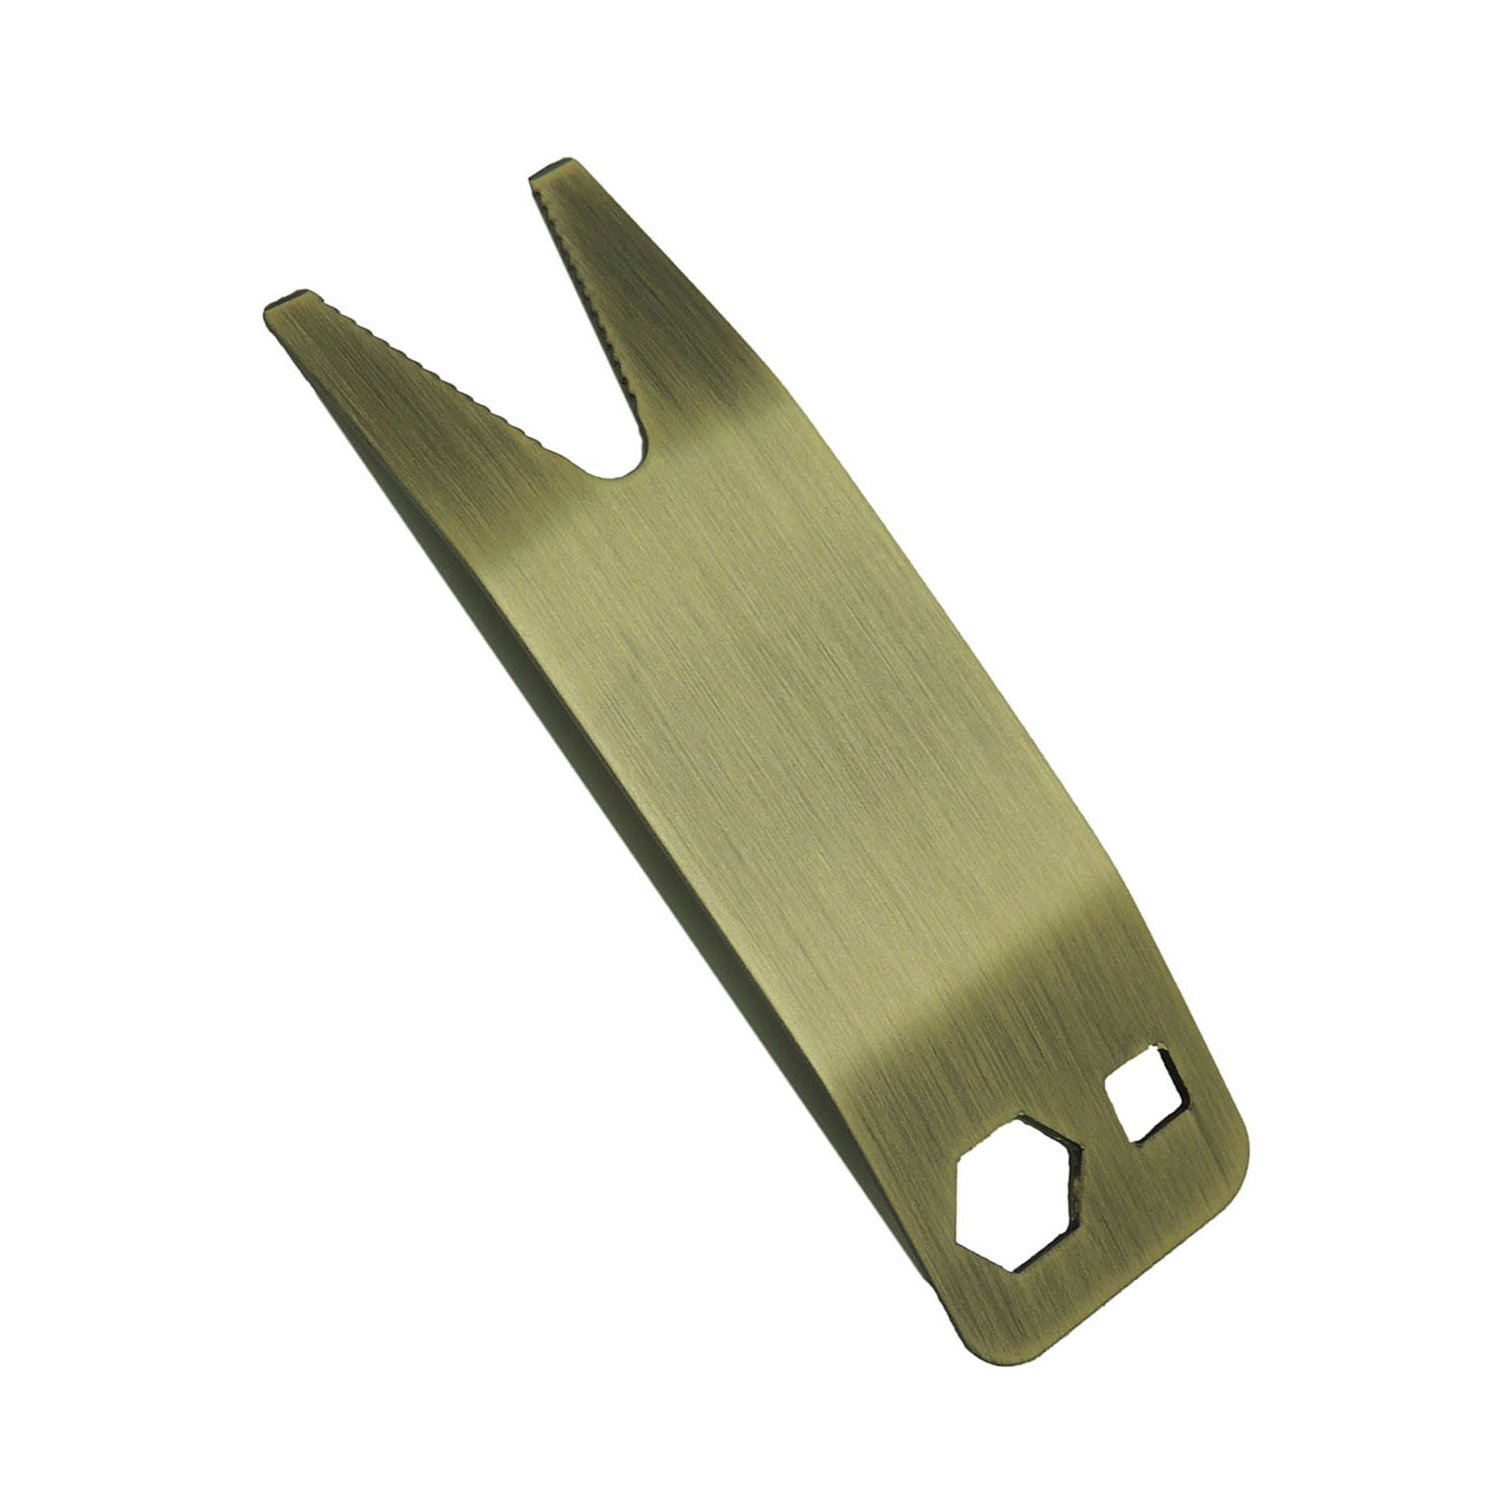 Guitar Bass Spanner Wrench Multi Tool for Tightening Pots Switches Jacks Collar